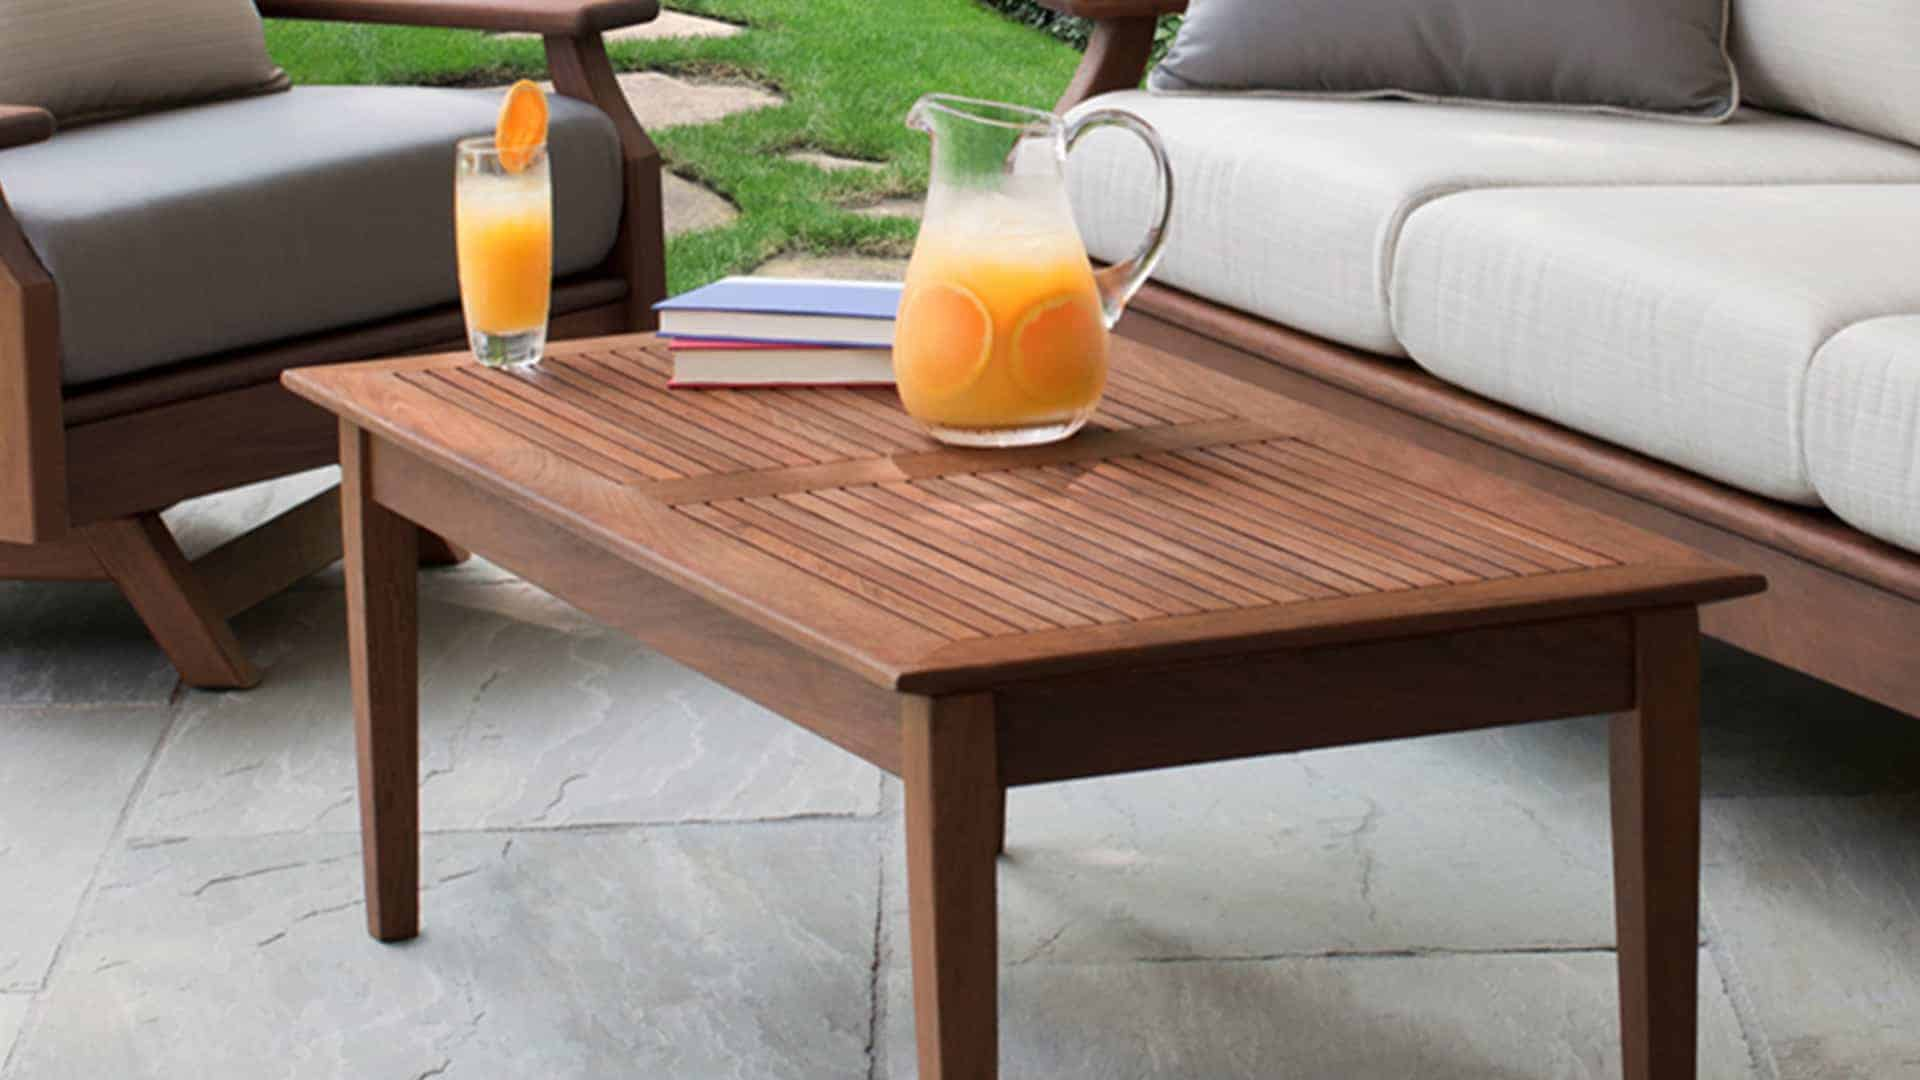 Opal Ft Coffee Table Jensen Leisure Furniture - 4ft coffee table